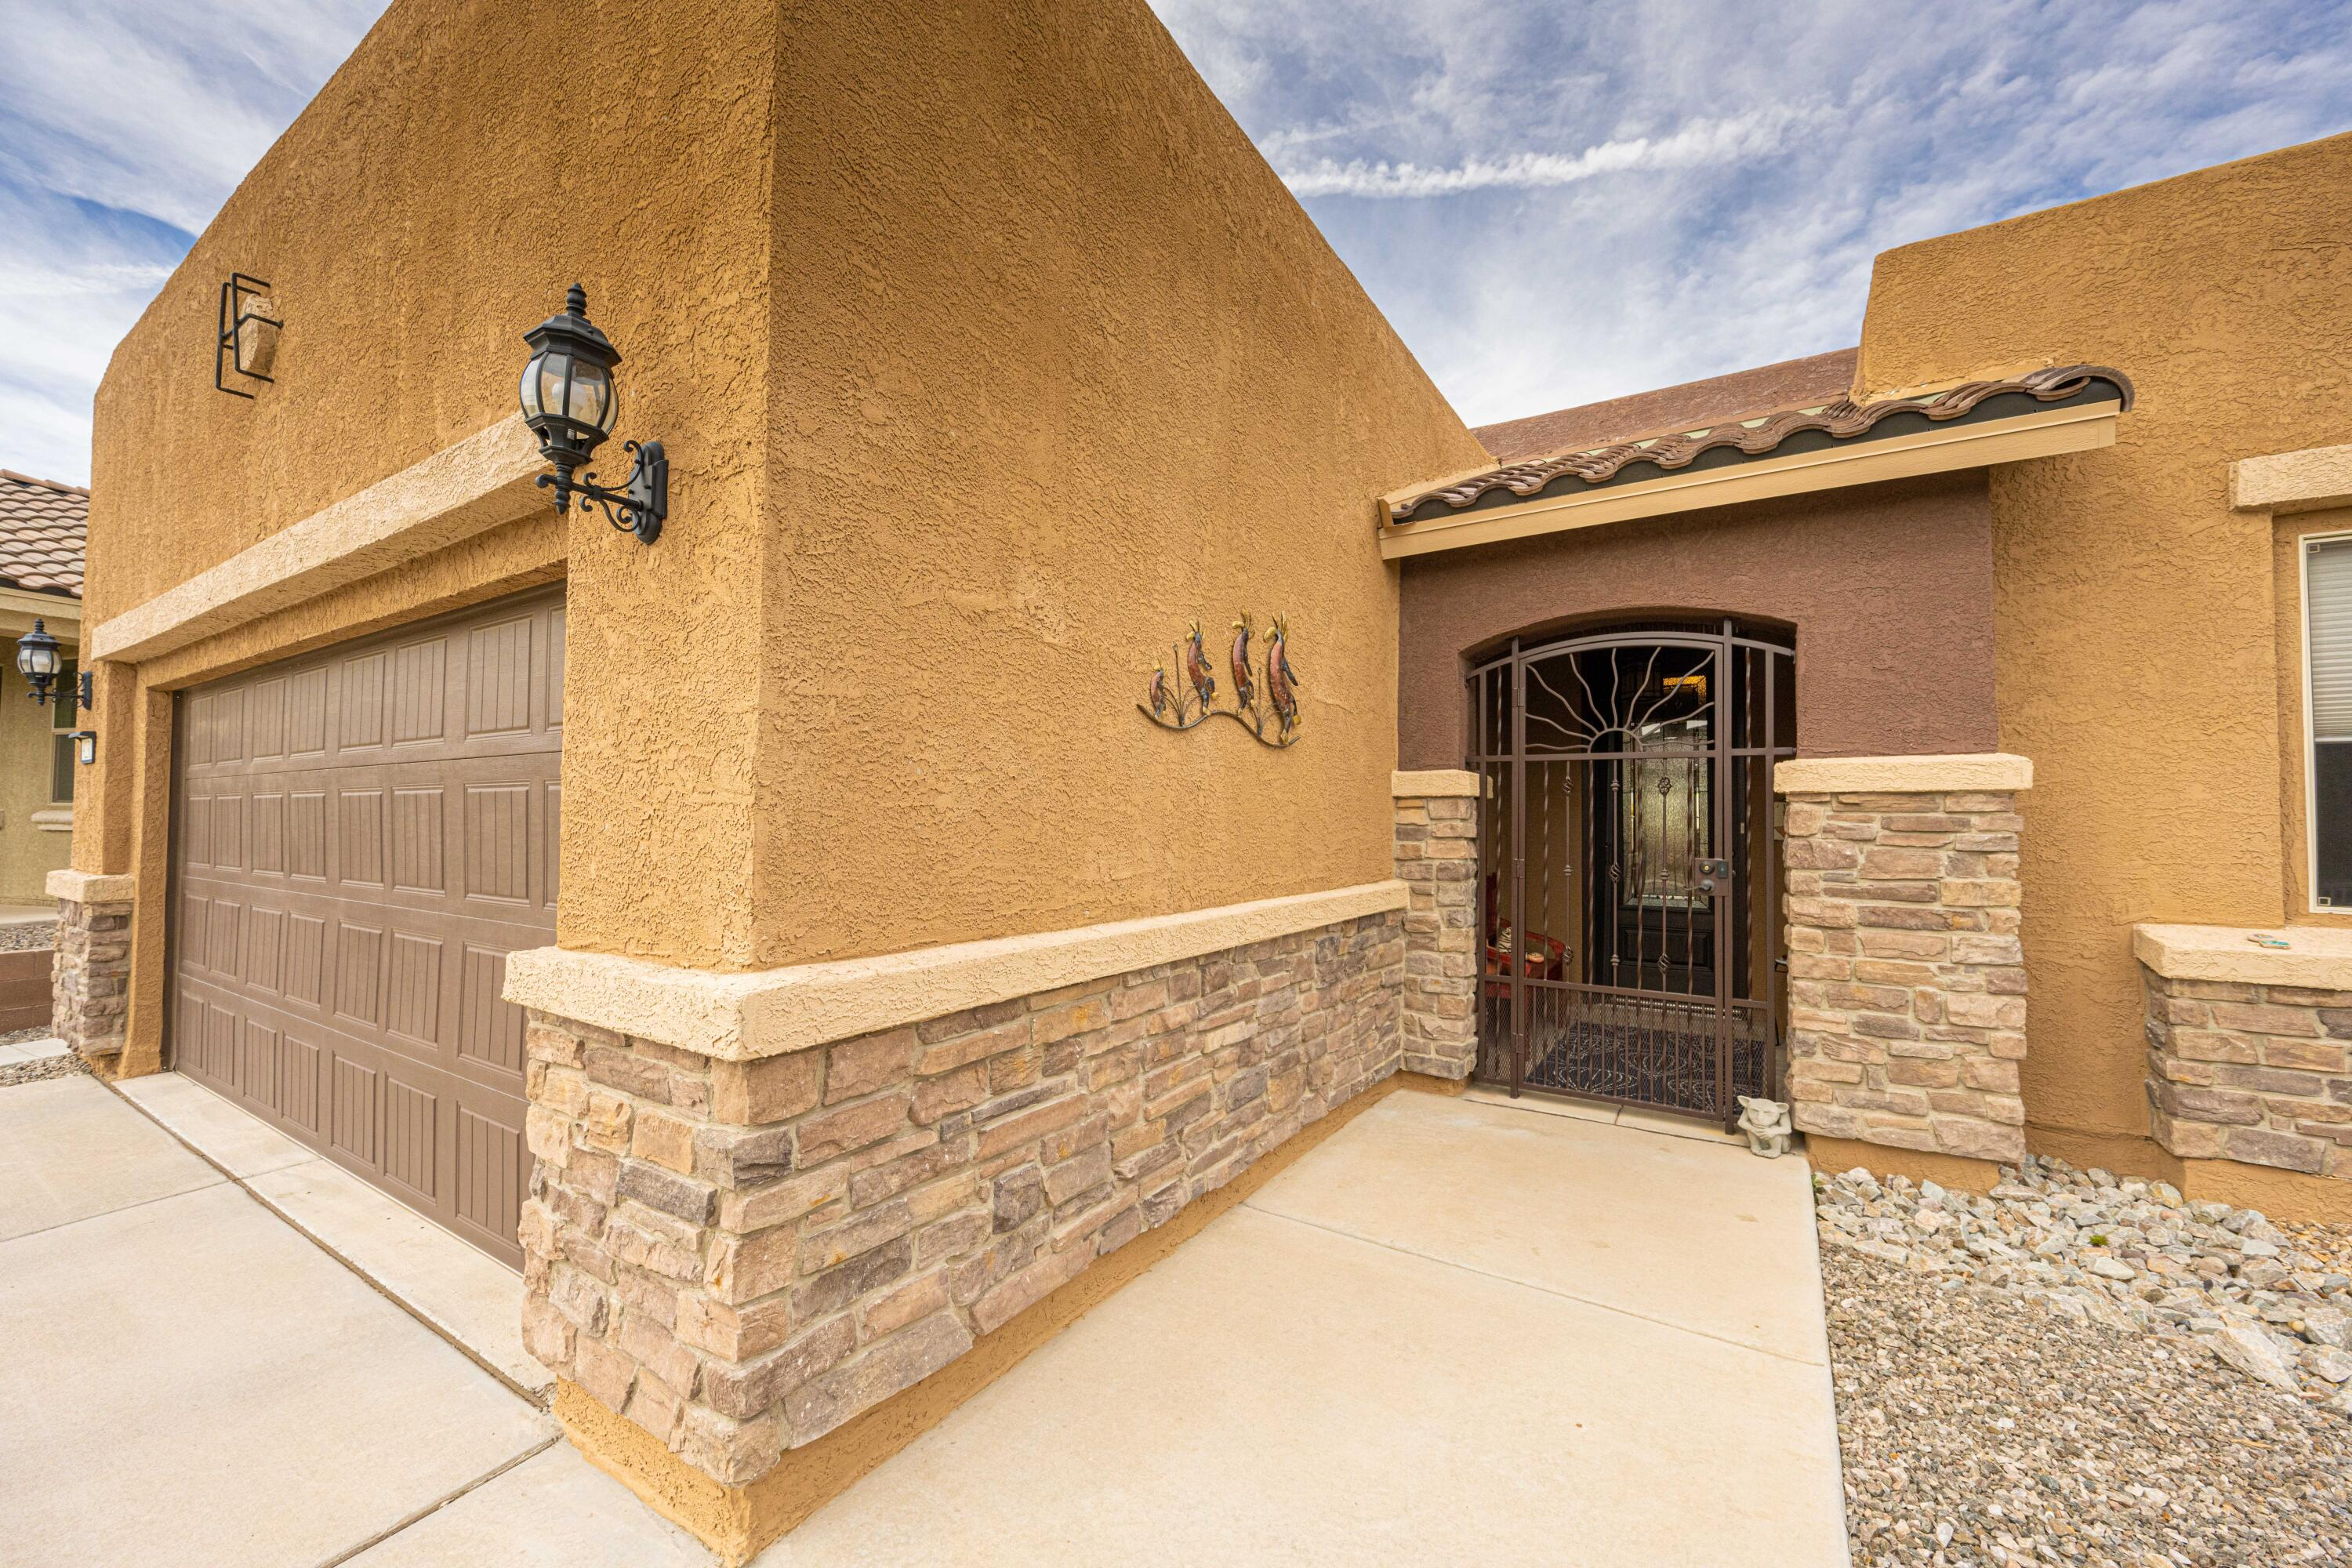 Beautiful Home in the Exclusive Del Webb Mirehaven 55+Community!! This 'Sanctuary' floorplan is approx 1835SF and sits on a large lot with some nice views of the Sandia's & Petroglyphs! Home offers 2BR's plus an office & Extended 4' Garage! Lux Kitchen Package has beautiful cabinets with pull outs, Gorgeous granite and back splash, Large Island with raised Dishwasher! Other Features include Gas FP, Bay Window in Master BR, Custom Gate Entry w/wireless doorbell, Custom Window Blinds, All Appliances incl Washer/Dryer and Refrigerator Stay, Large, low maintenance Custom Back Yard w/large covered patio & VIEWS! Low Utility Bills...Sun State Solar Panels! System is leased & new owner will take over lease.  Amenity Center offers daily activities, tennis courts, pickle ball, gym, salt water pool!